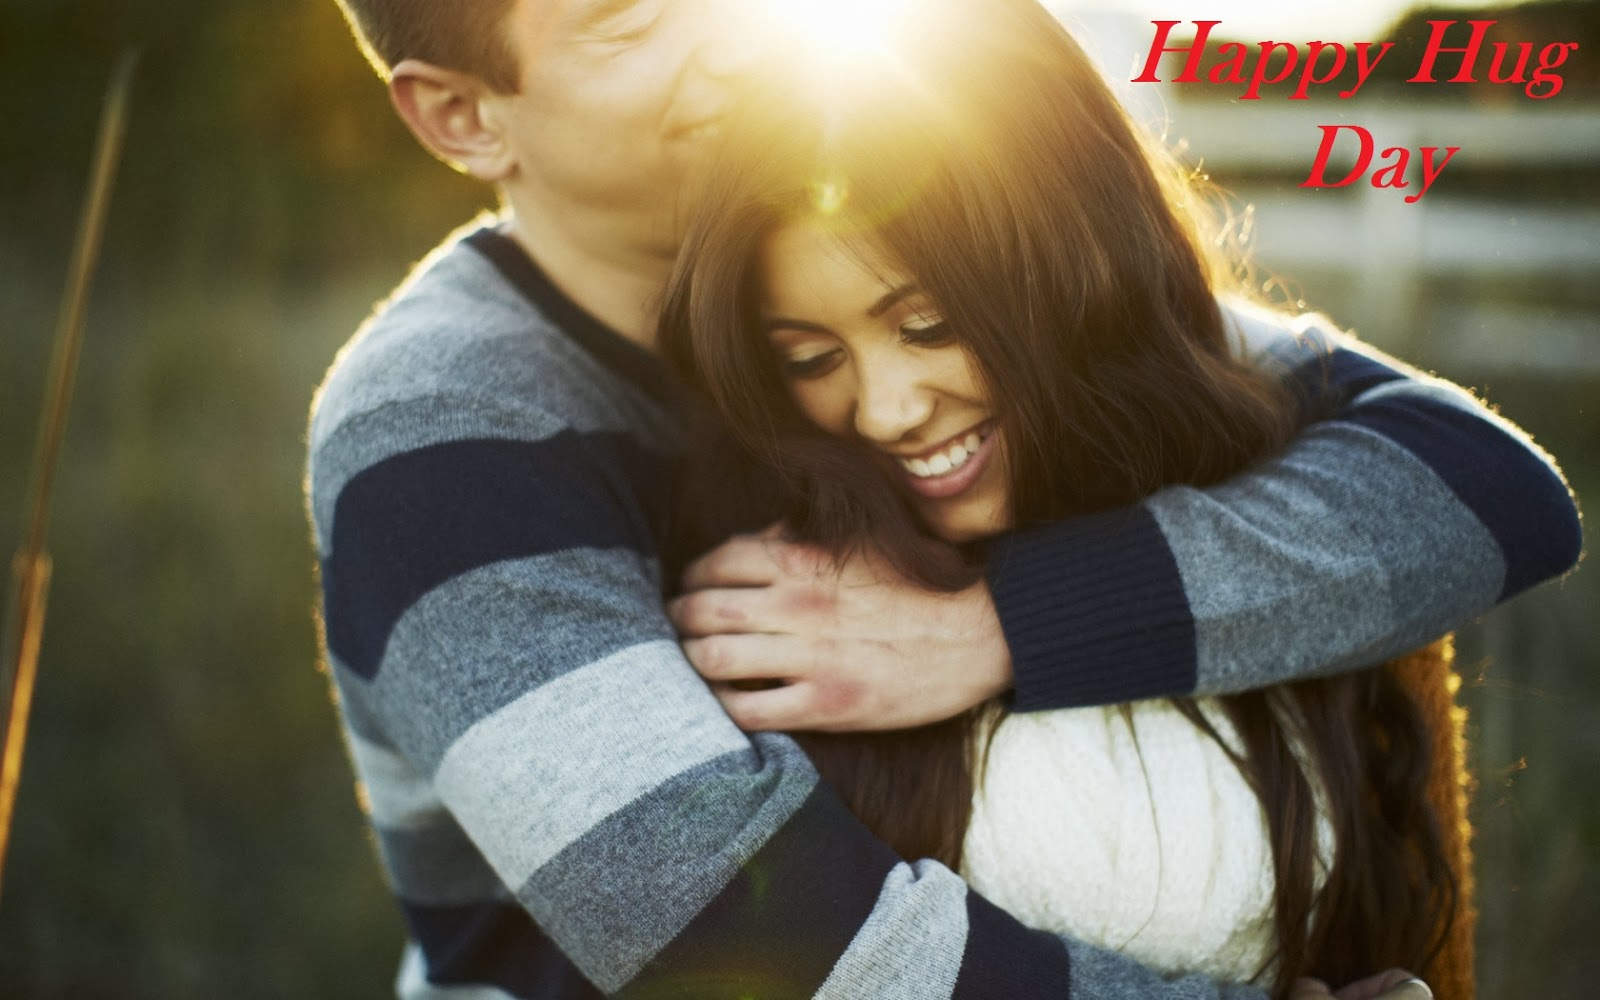 Missing Beats of Life: Happy Hug day (12th February 2014) HD Wallpapers and Images